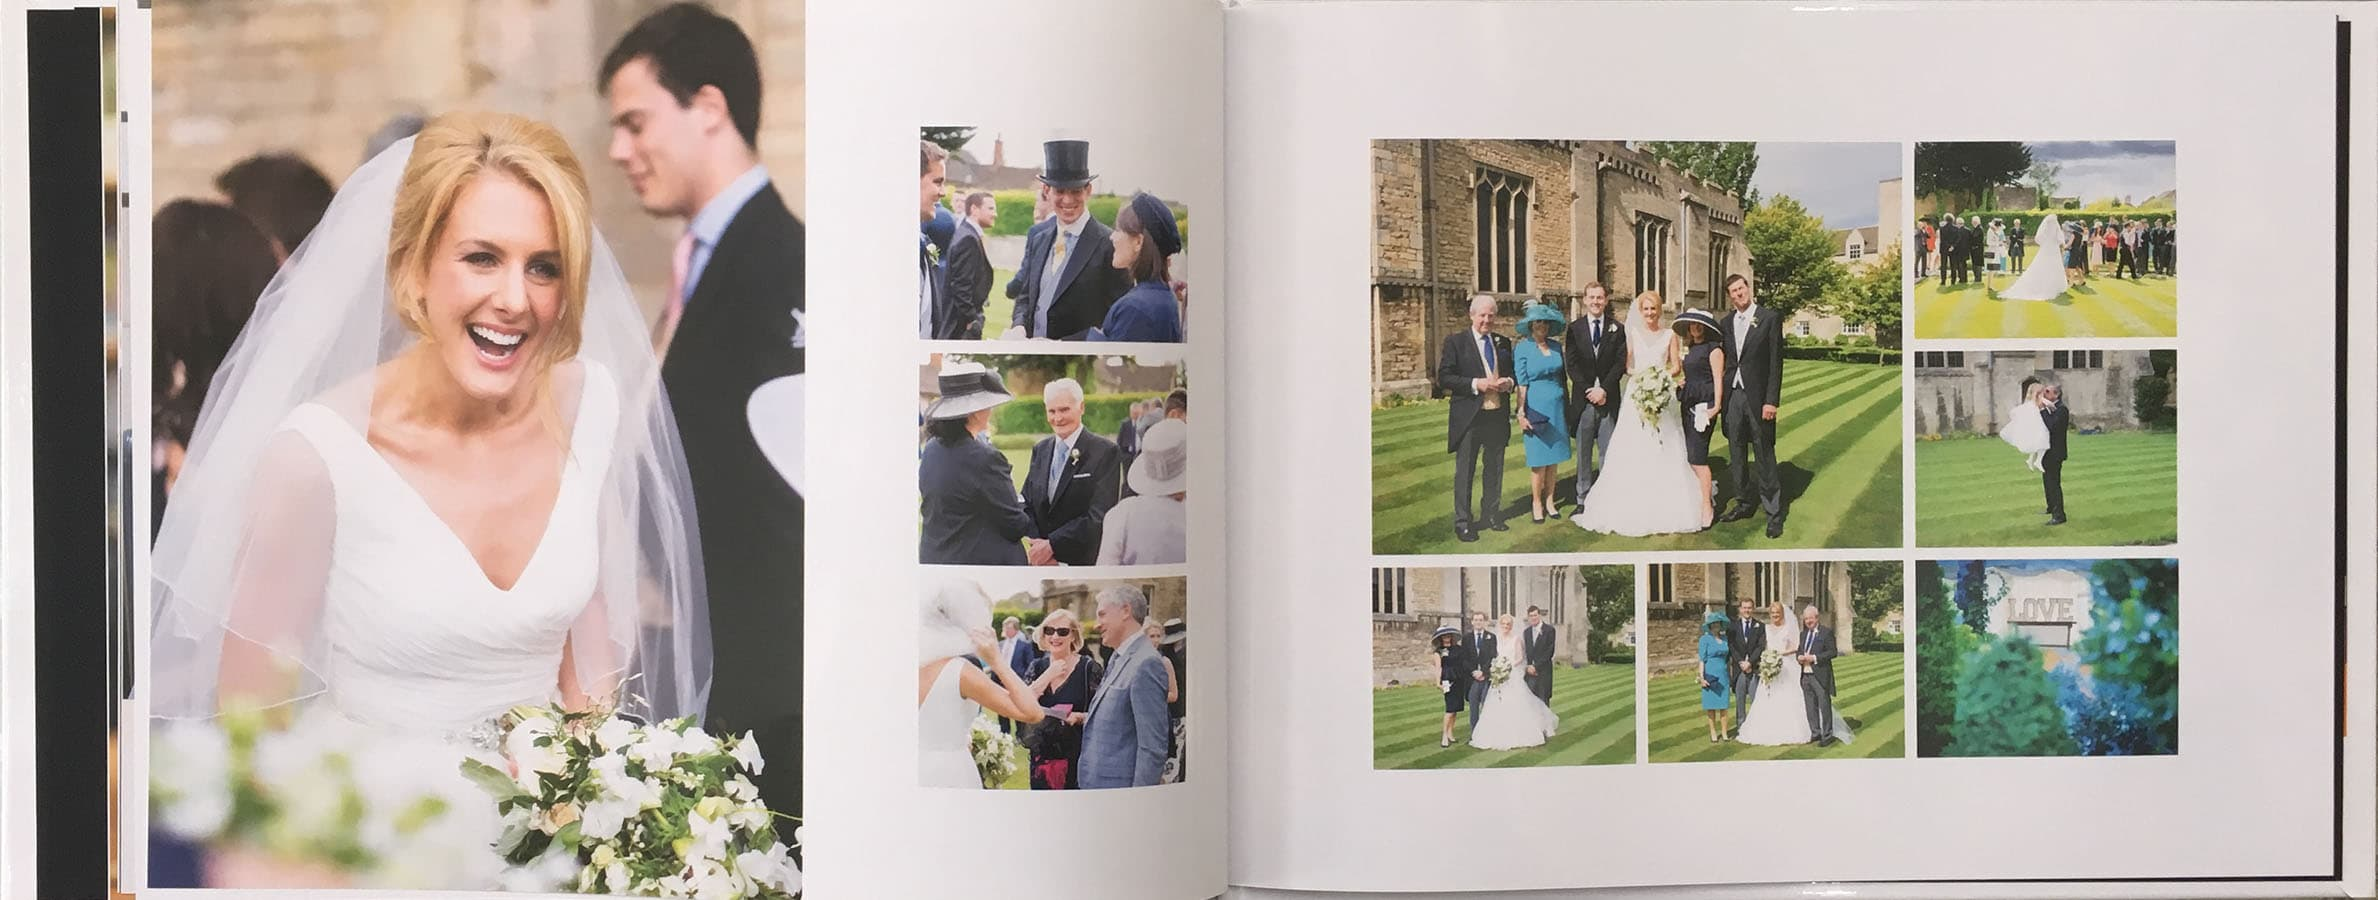 Photobook-wedding2